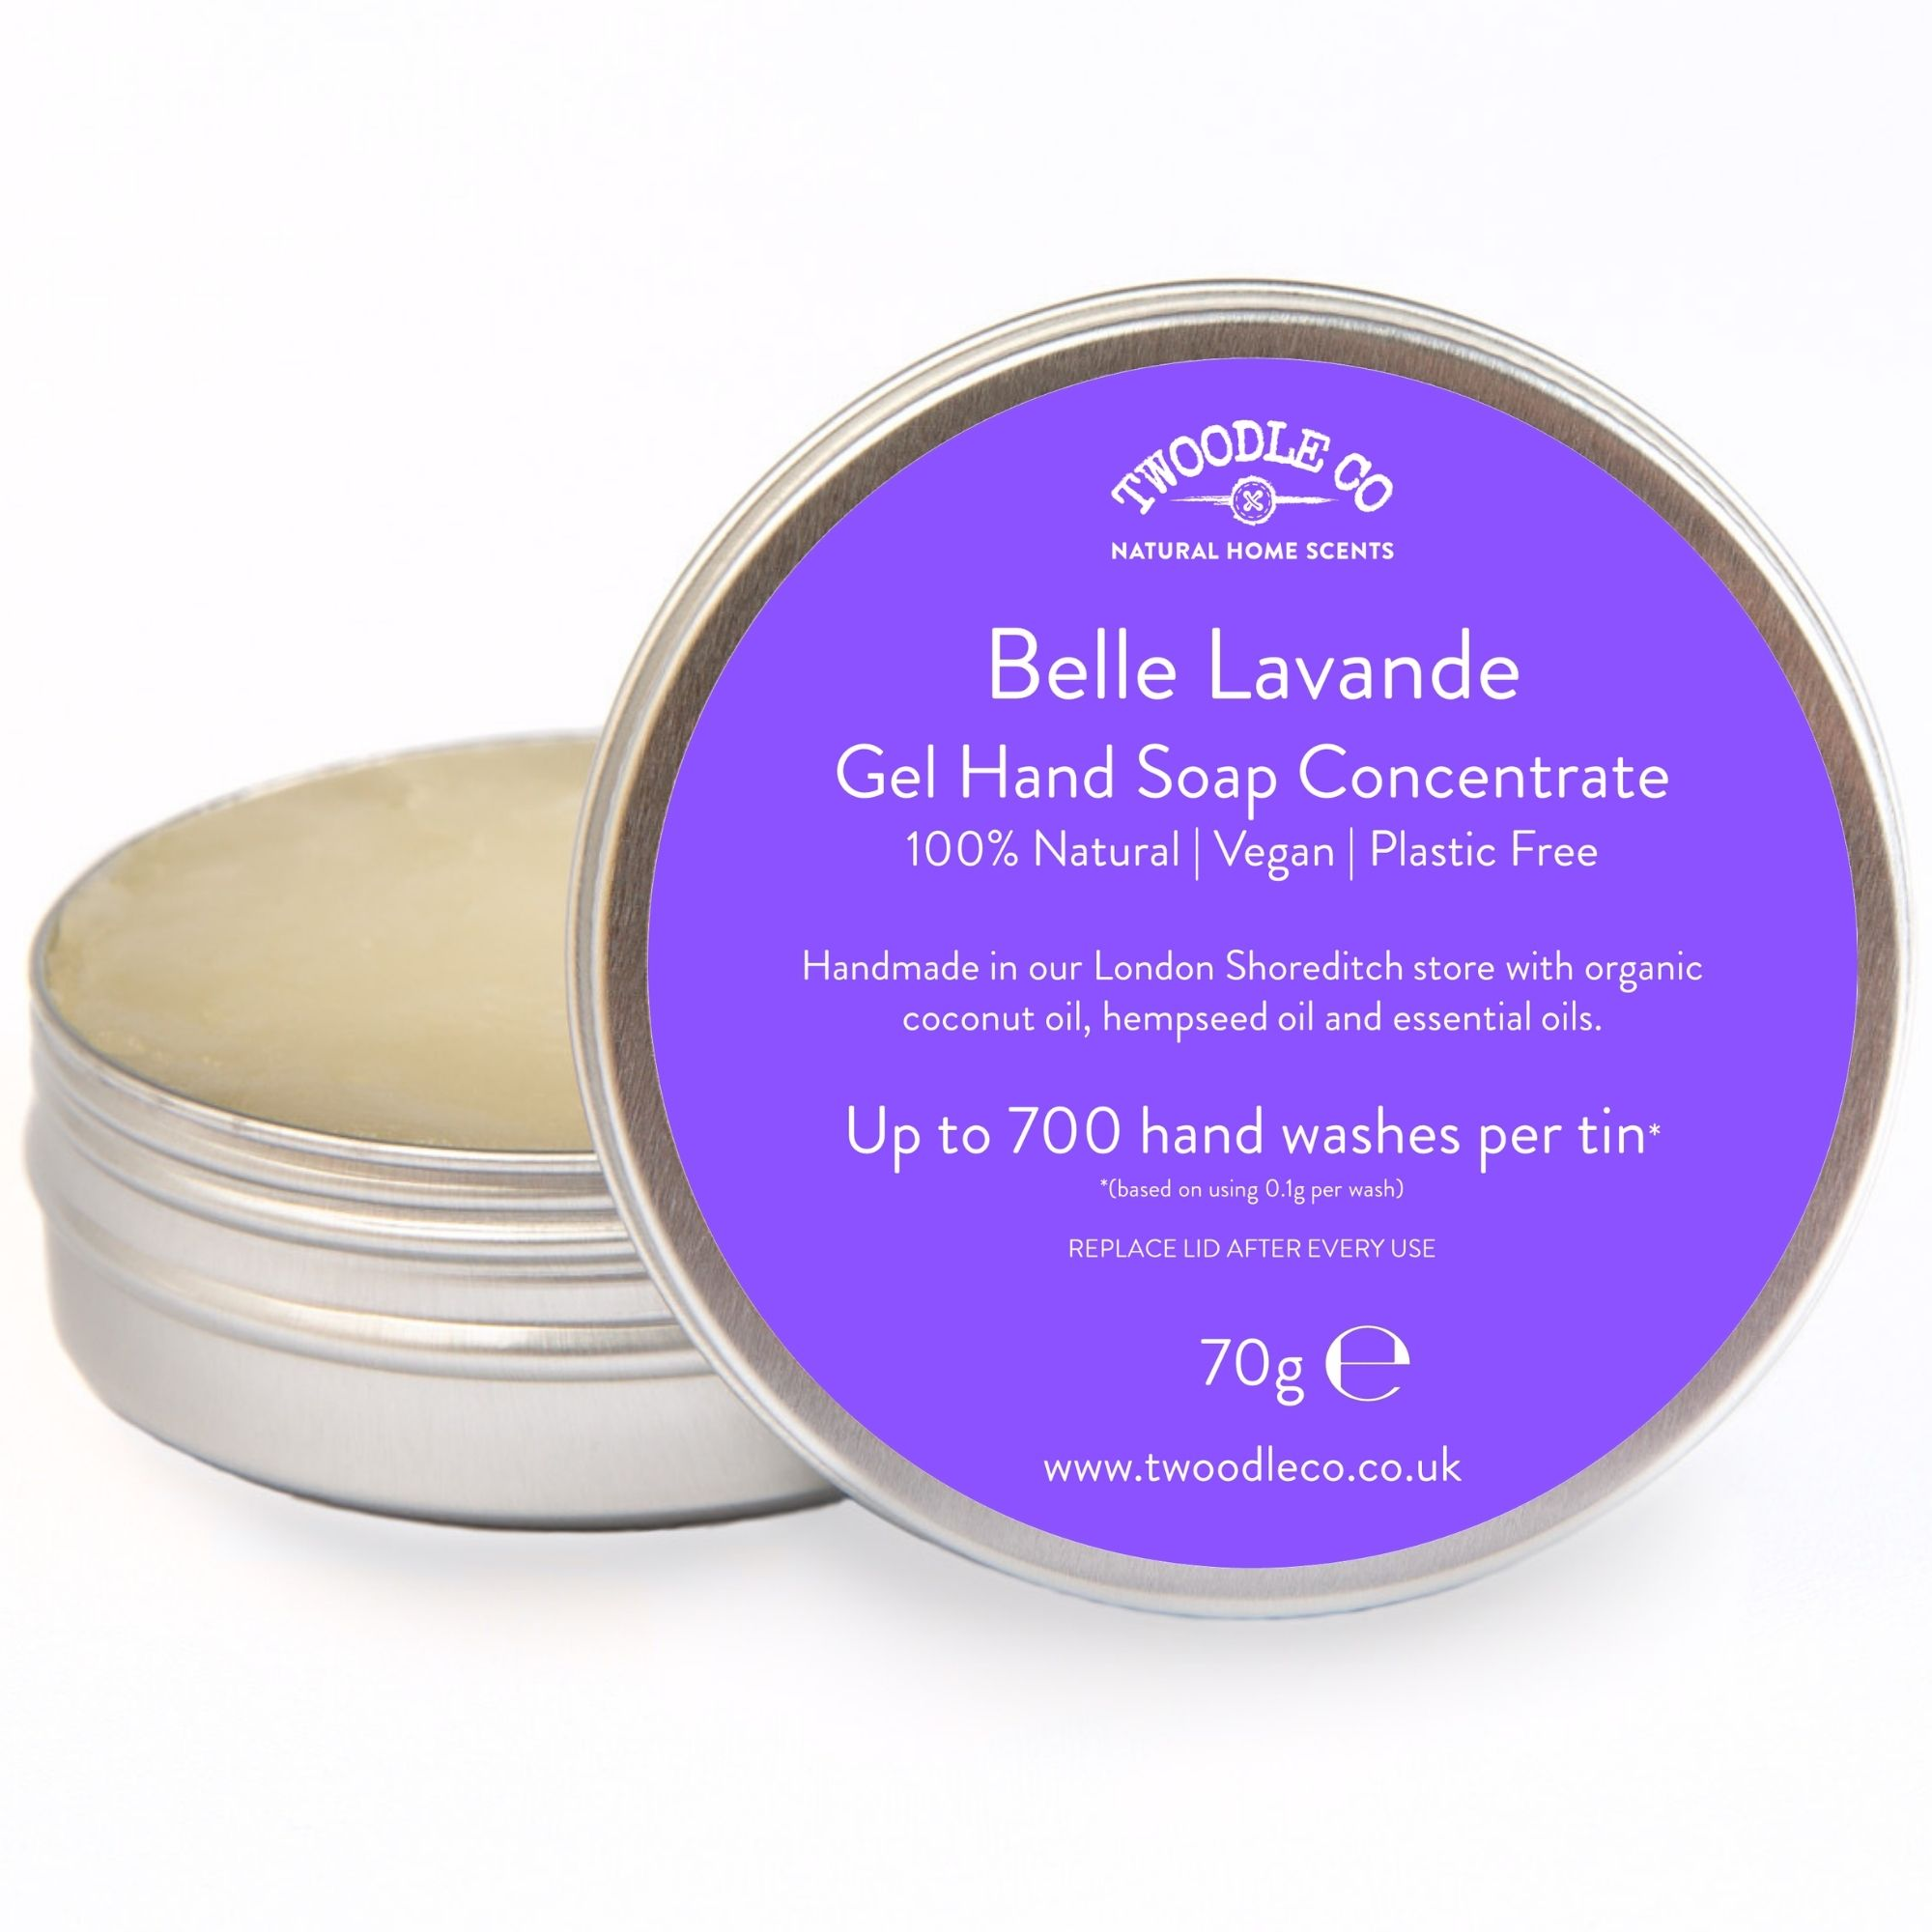 Belle Lavande Gel Hand Soap Concentrate